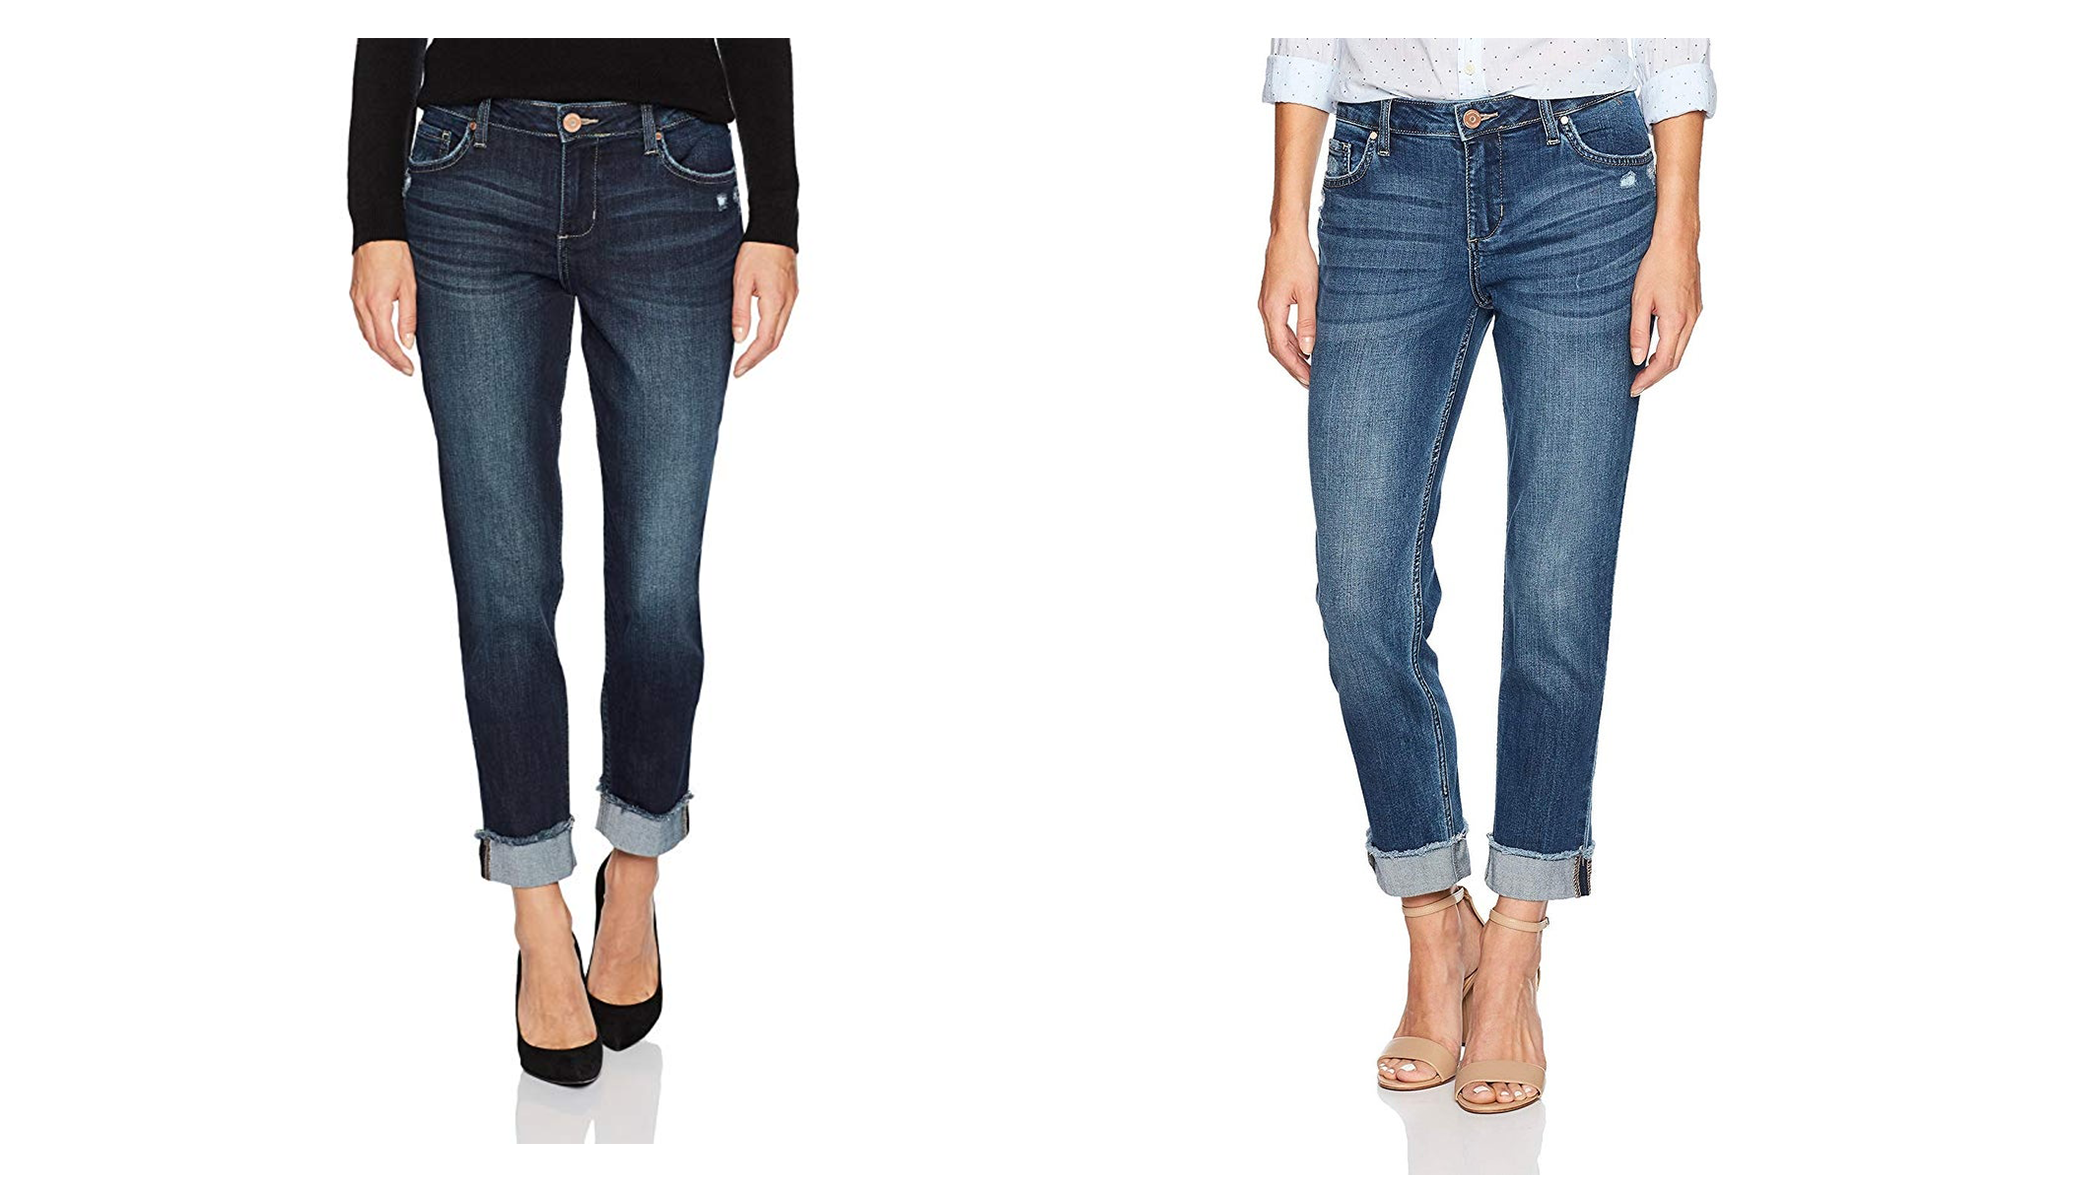 A woman wearing a dark pair of the Fringe Cuff Boyfriend Jeans, and another woman wearing a pair in lighter blue.